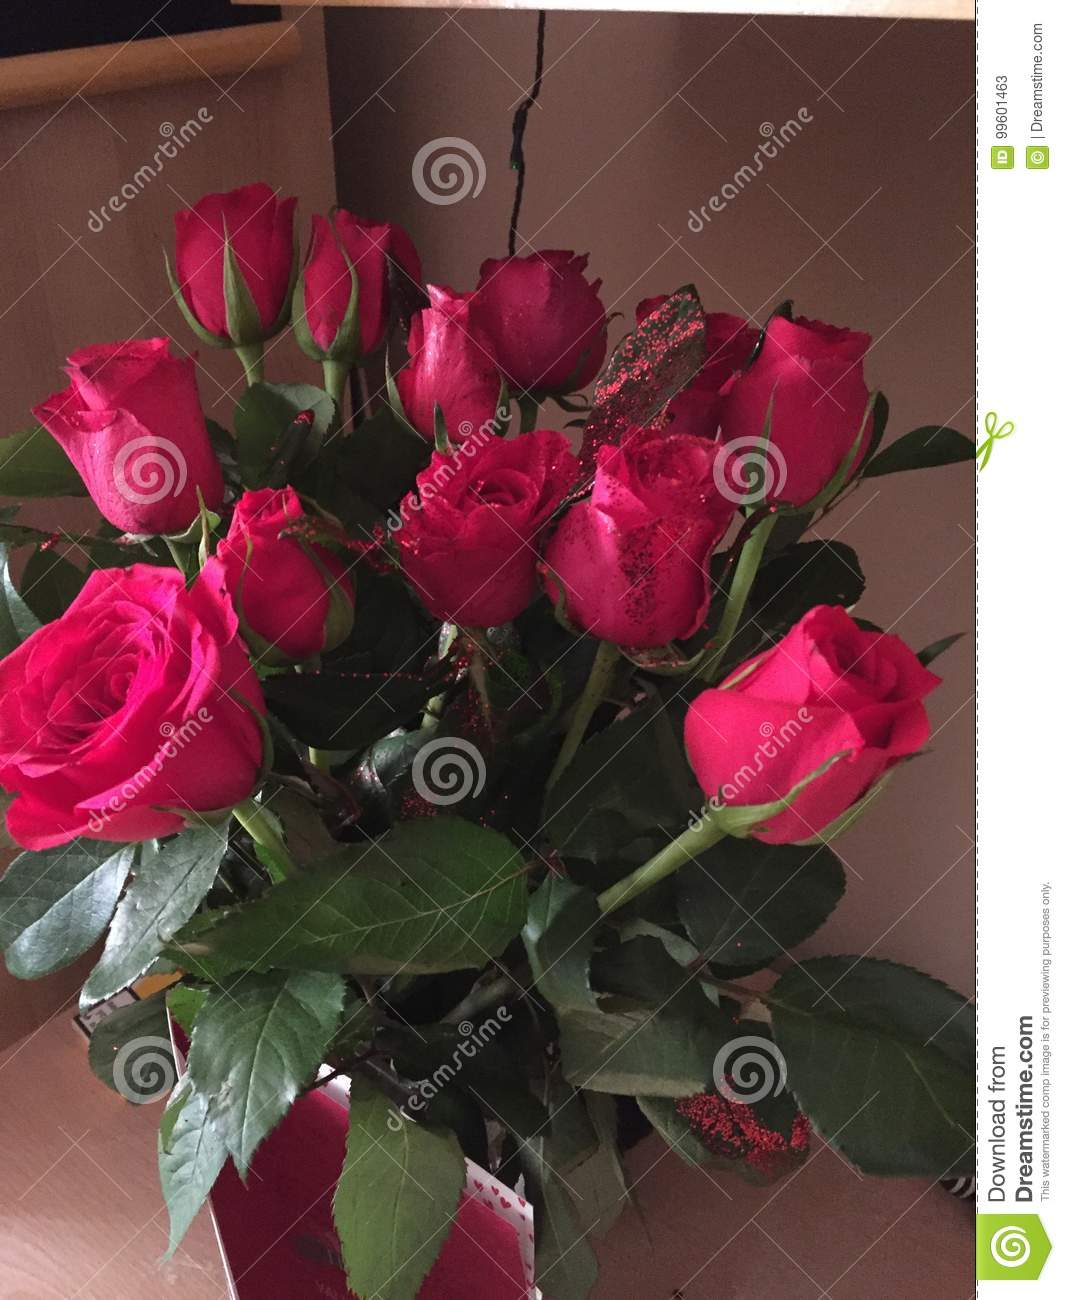 Red roses flower flowers bouquet stock image image of flower red roses flower flowers bouquet izmirmasajfo